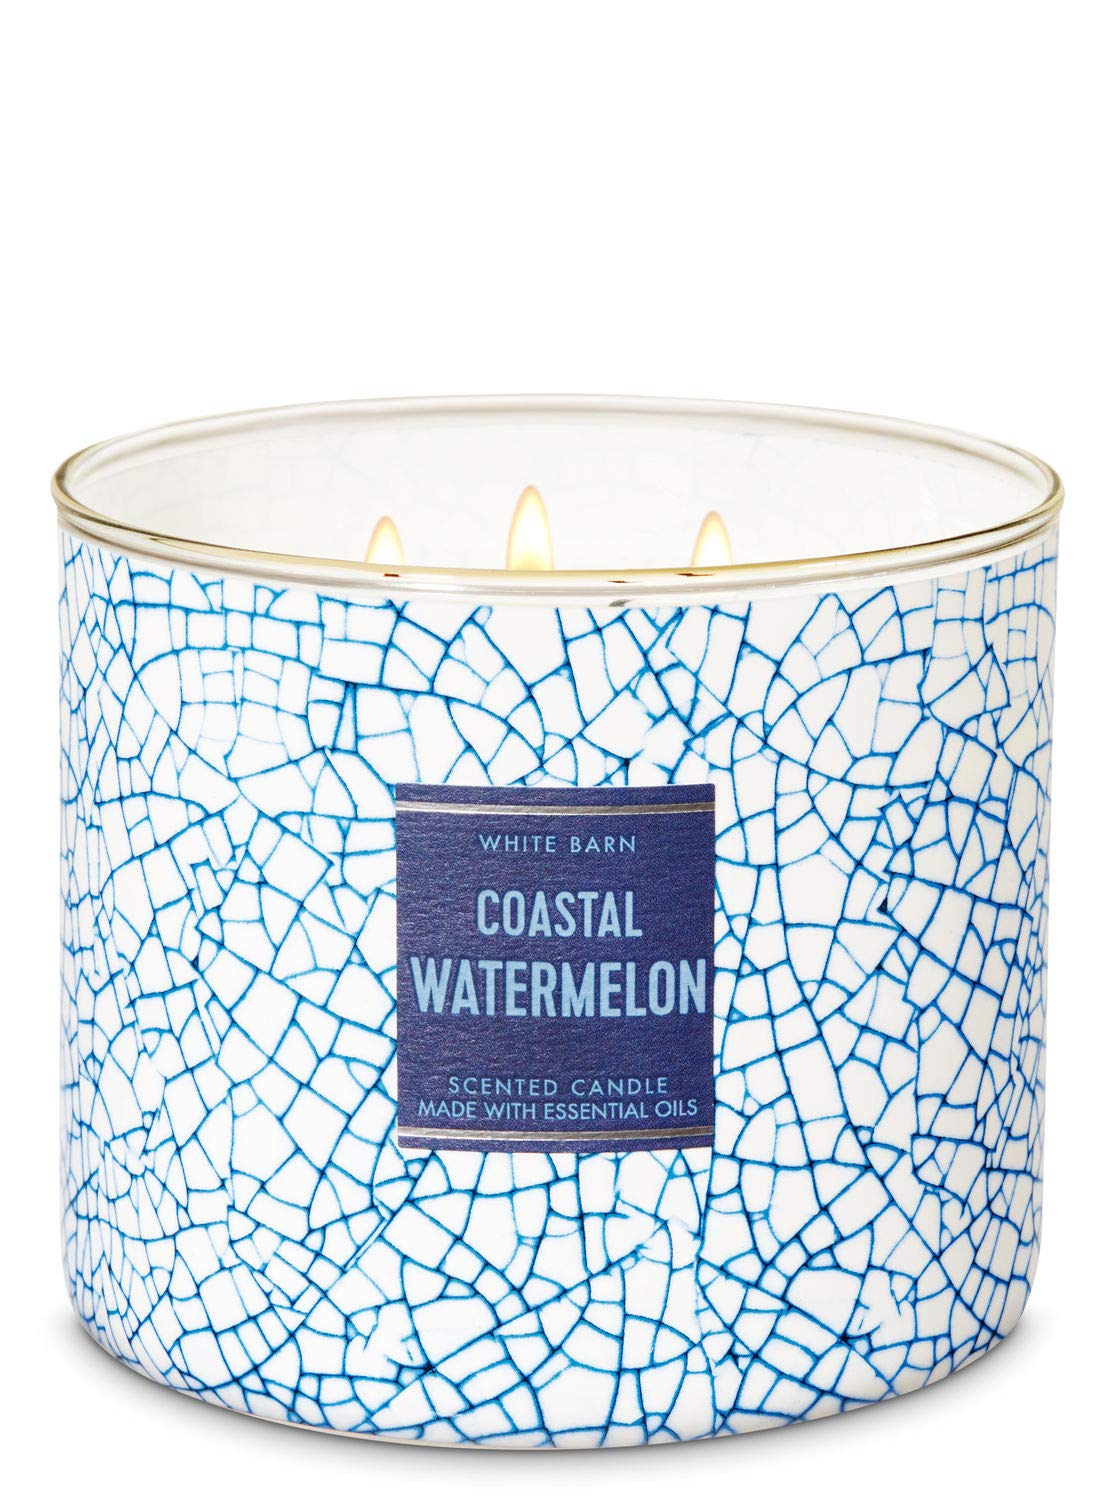 Bath & Body Works Coastal Watermelon 3 wick Scented Candle